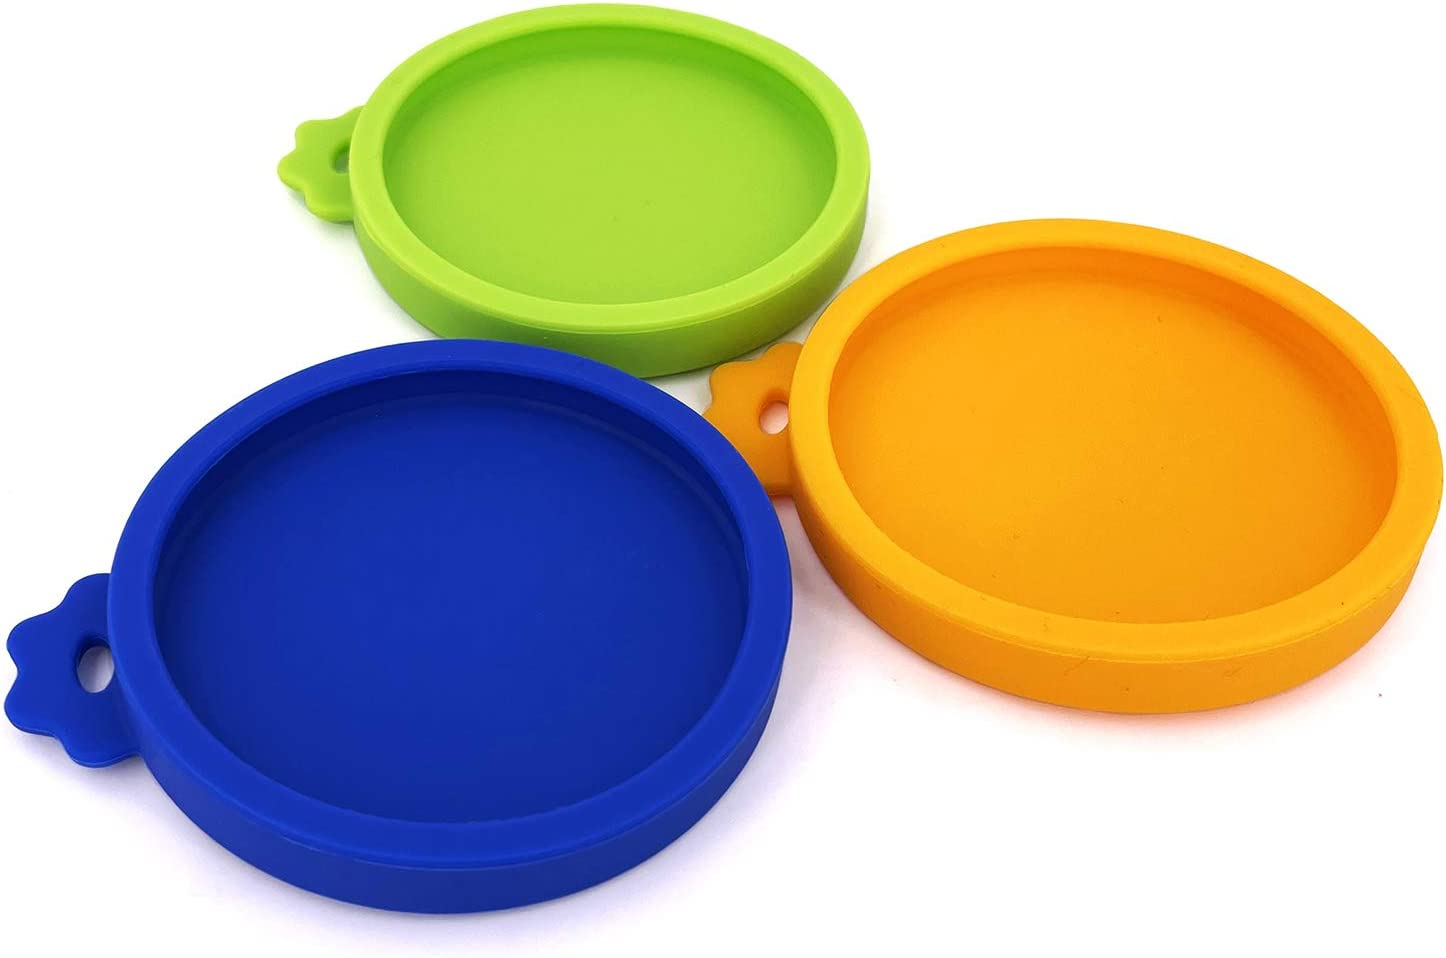 Comtim 3 Pack Cat Food Can Lids, Silicone Small Pet Food Can Lids Covers for 3 oz Cat Food Cans